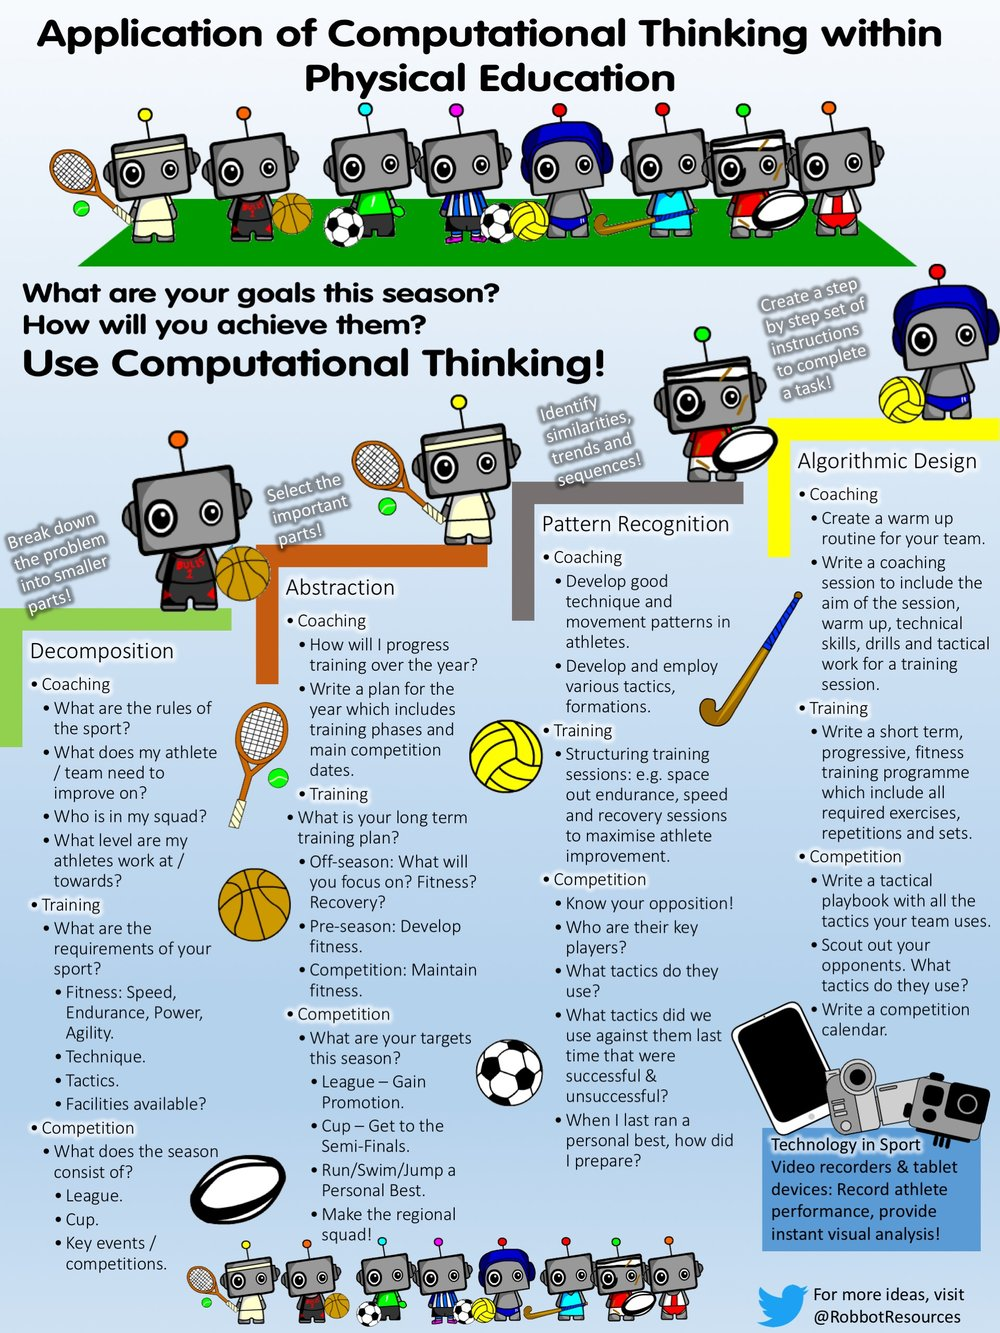 Download for free here:  https://www.tes.com/teaching-resource/computational-thinking-poster-physical-education-11728757